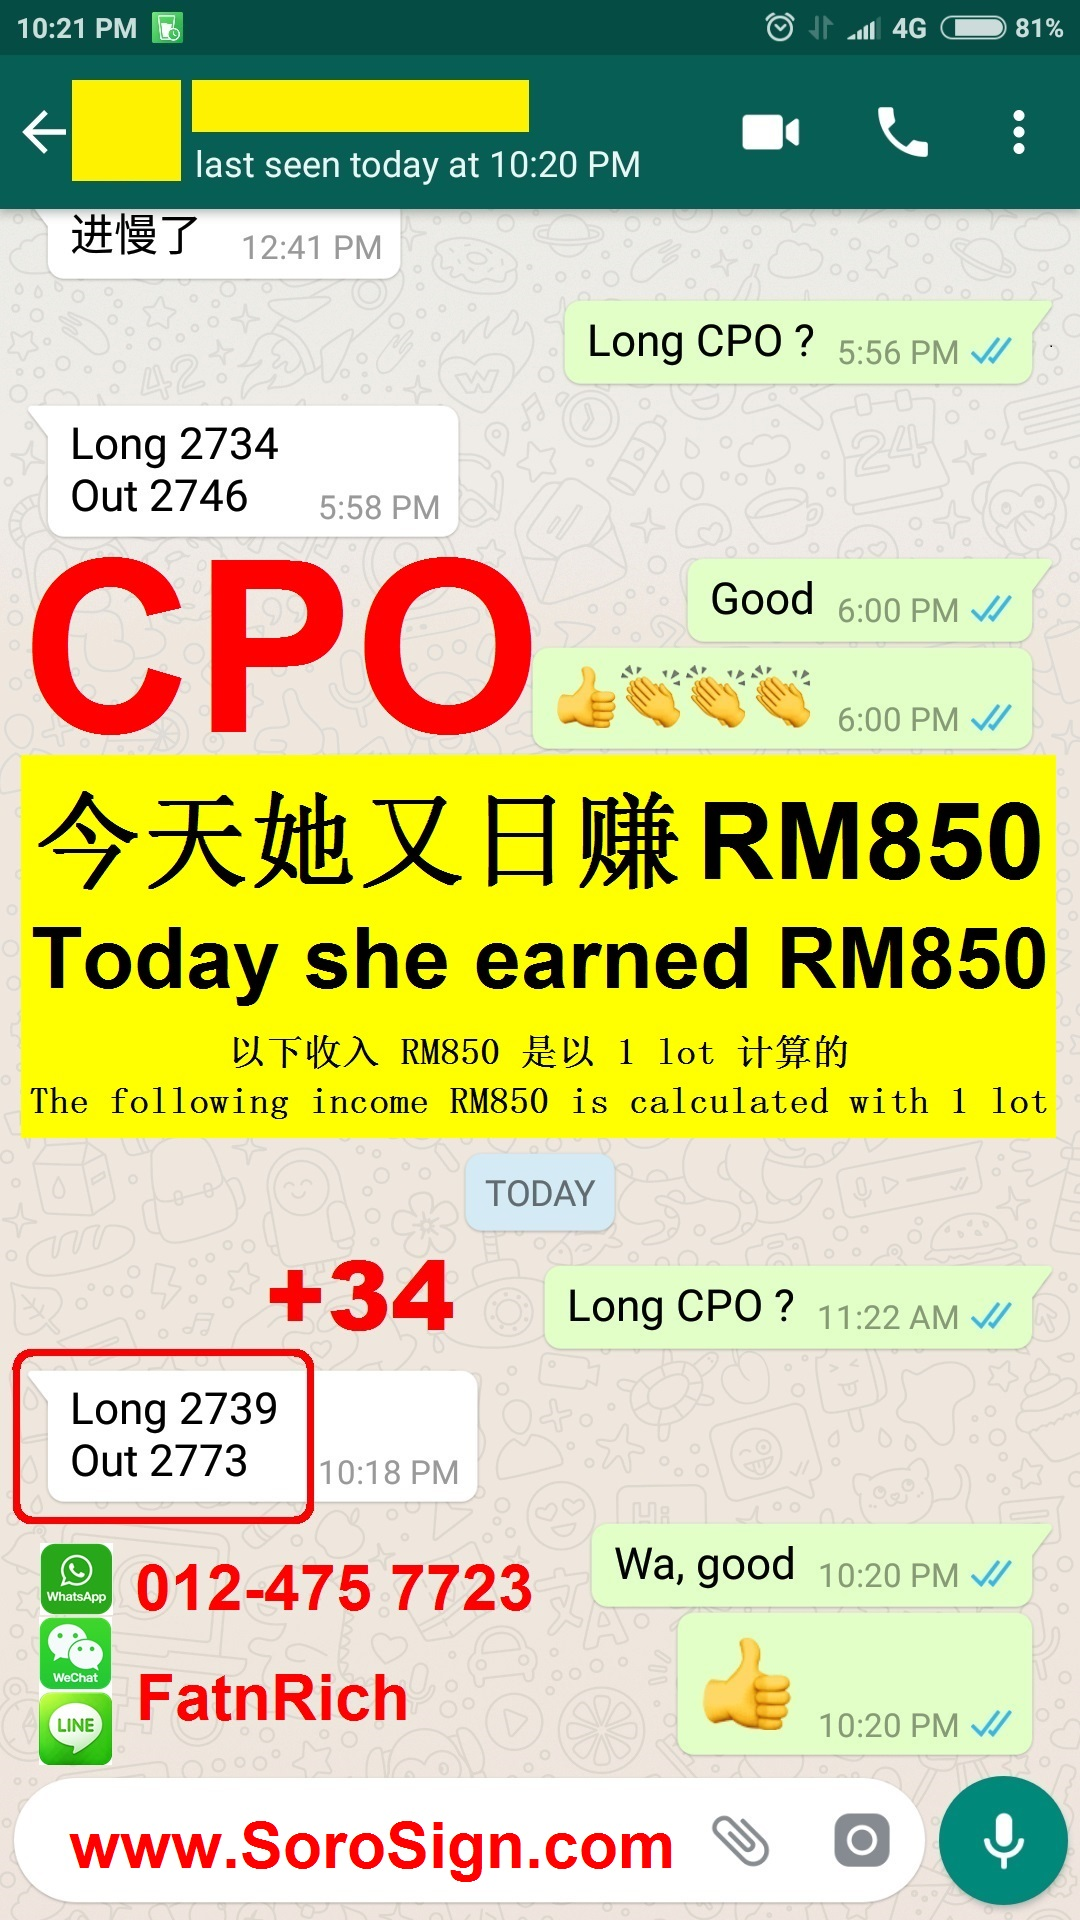 She earned RM850 today